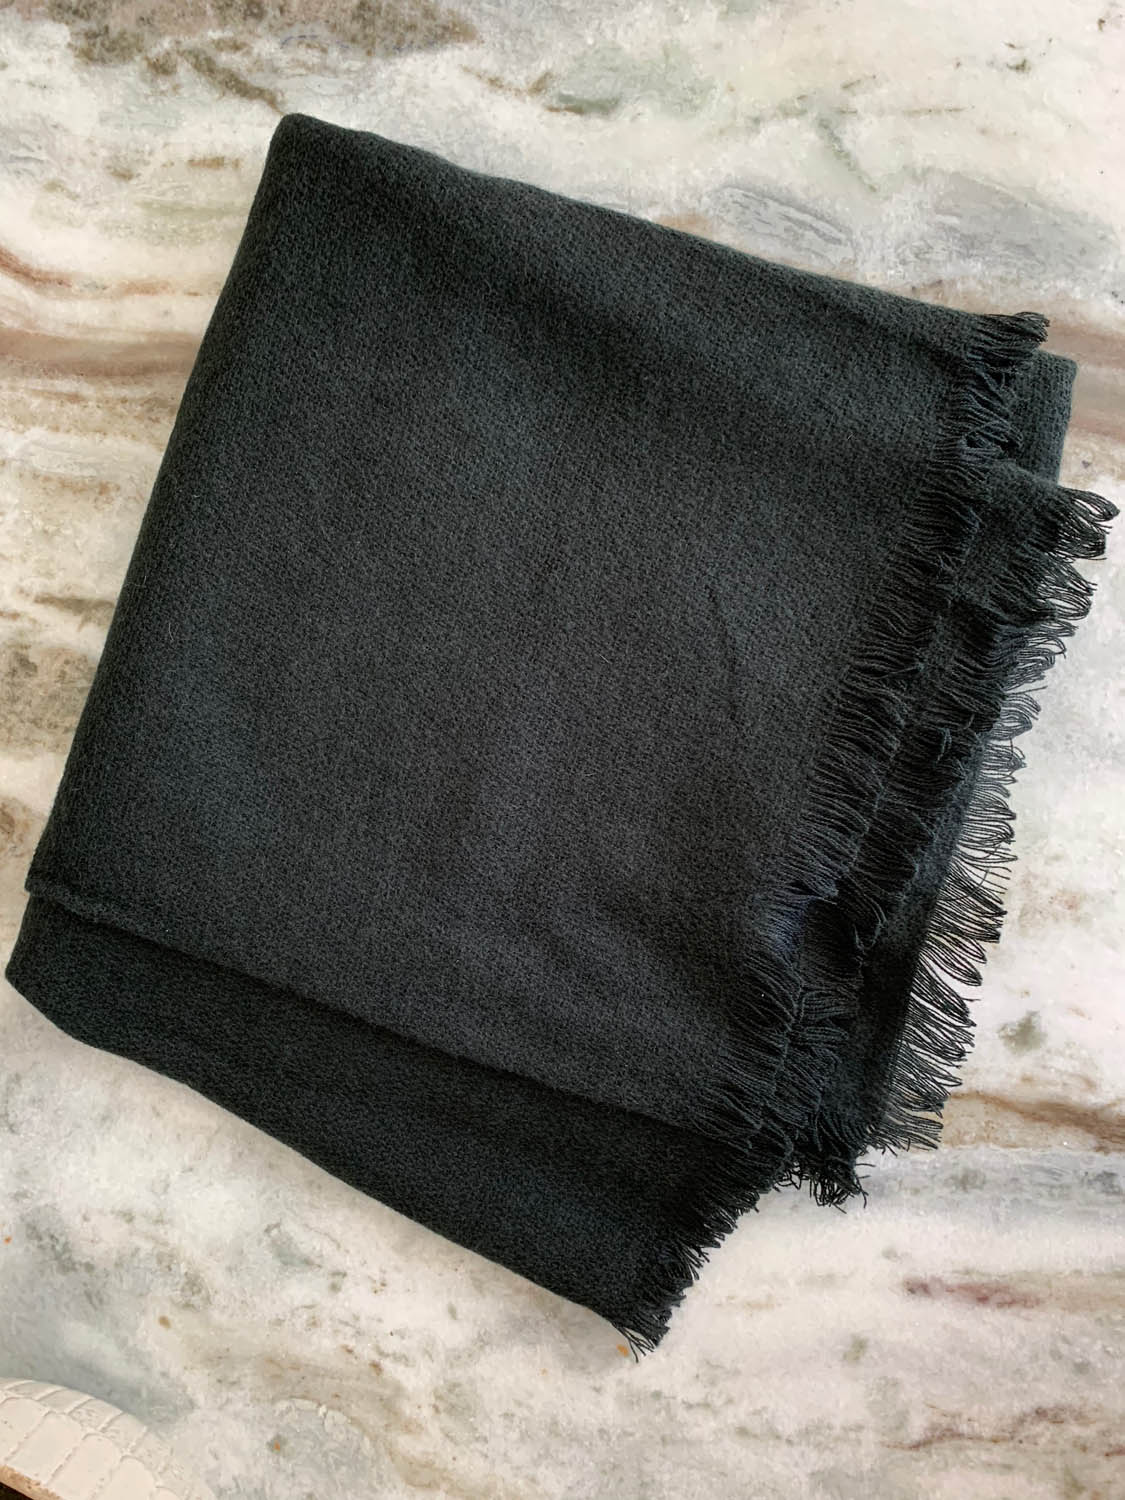 Pre-made purchased black woven shawl